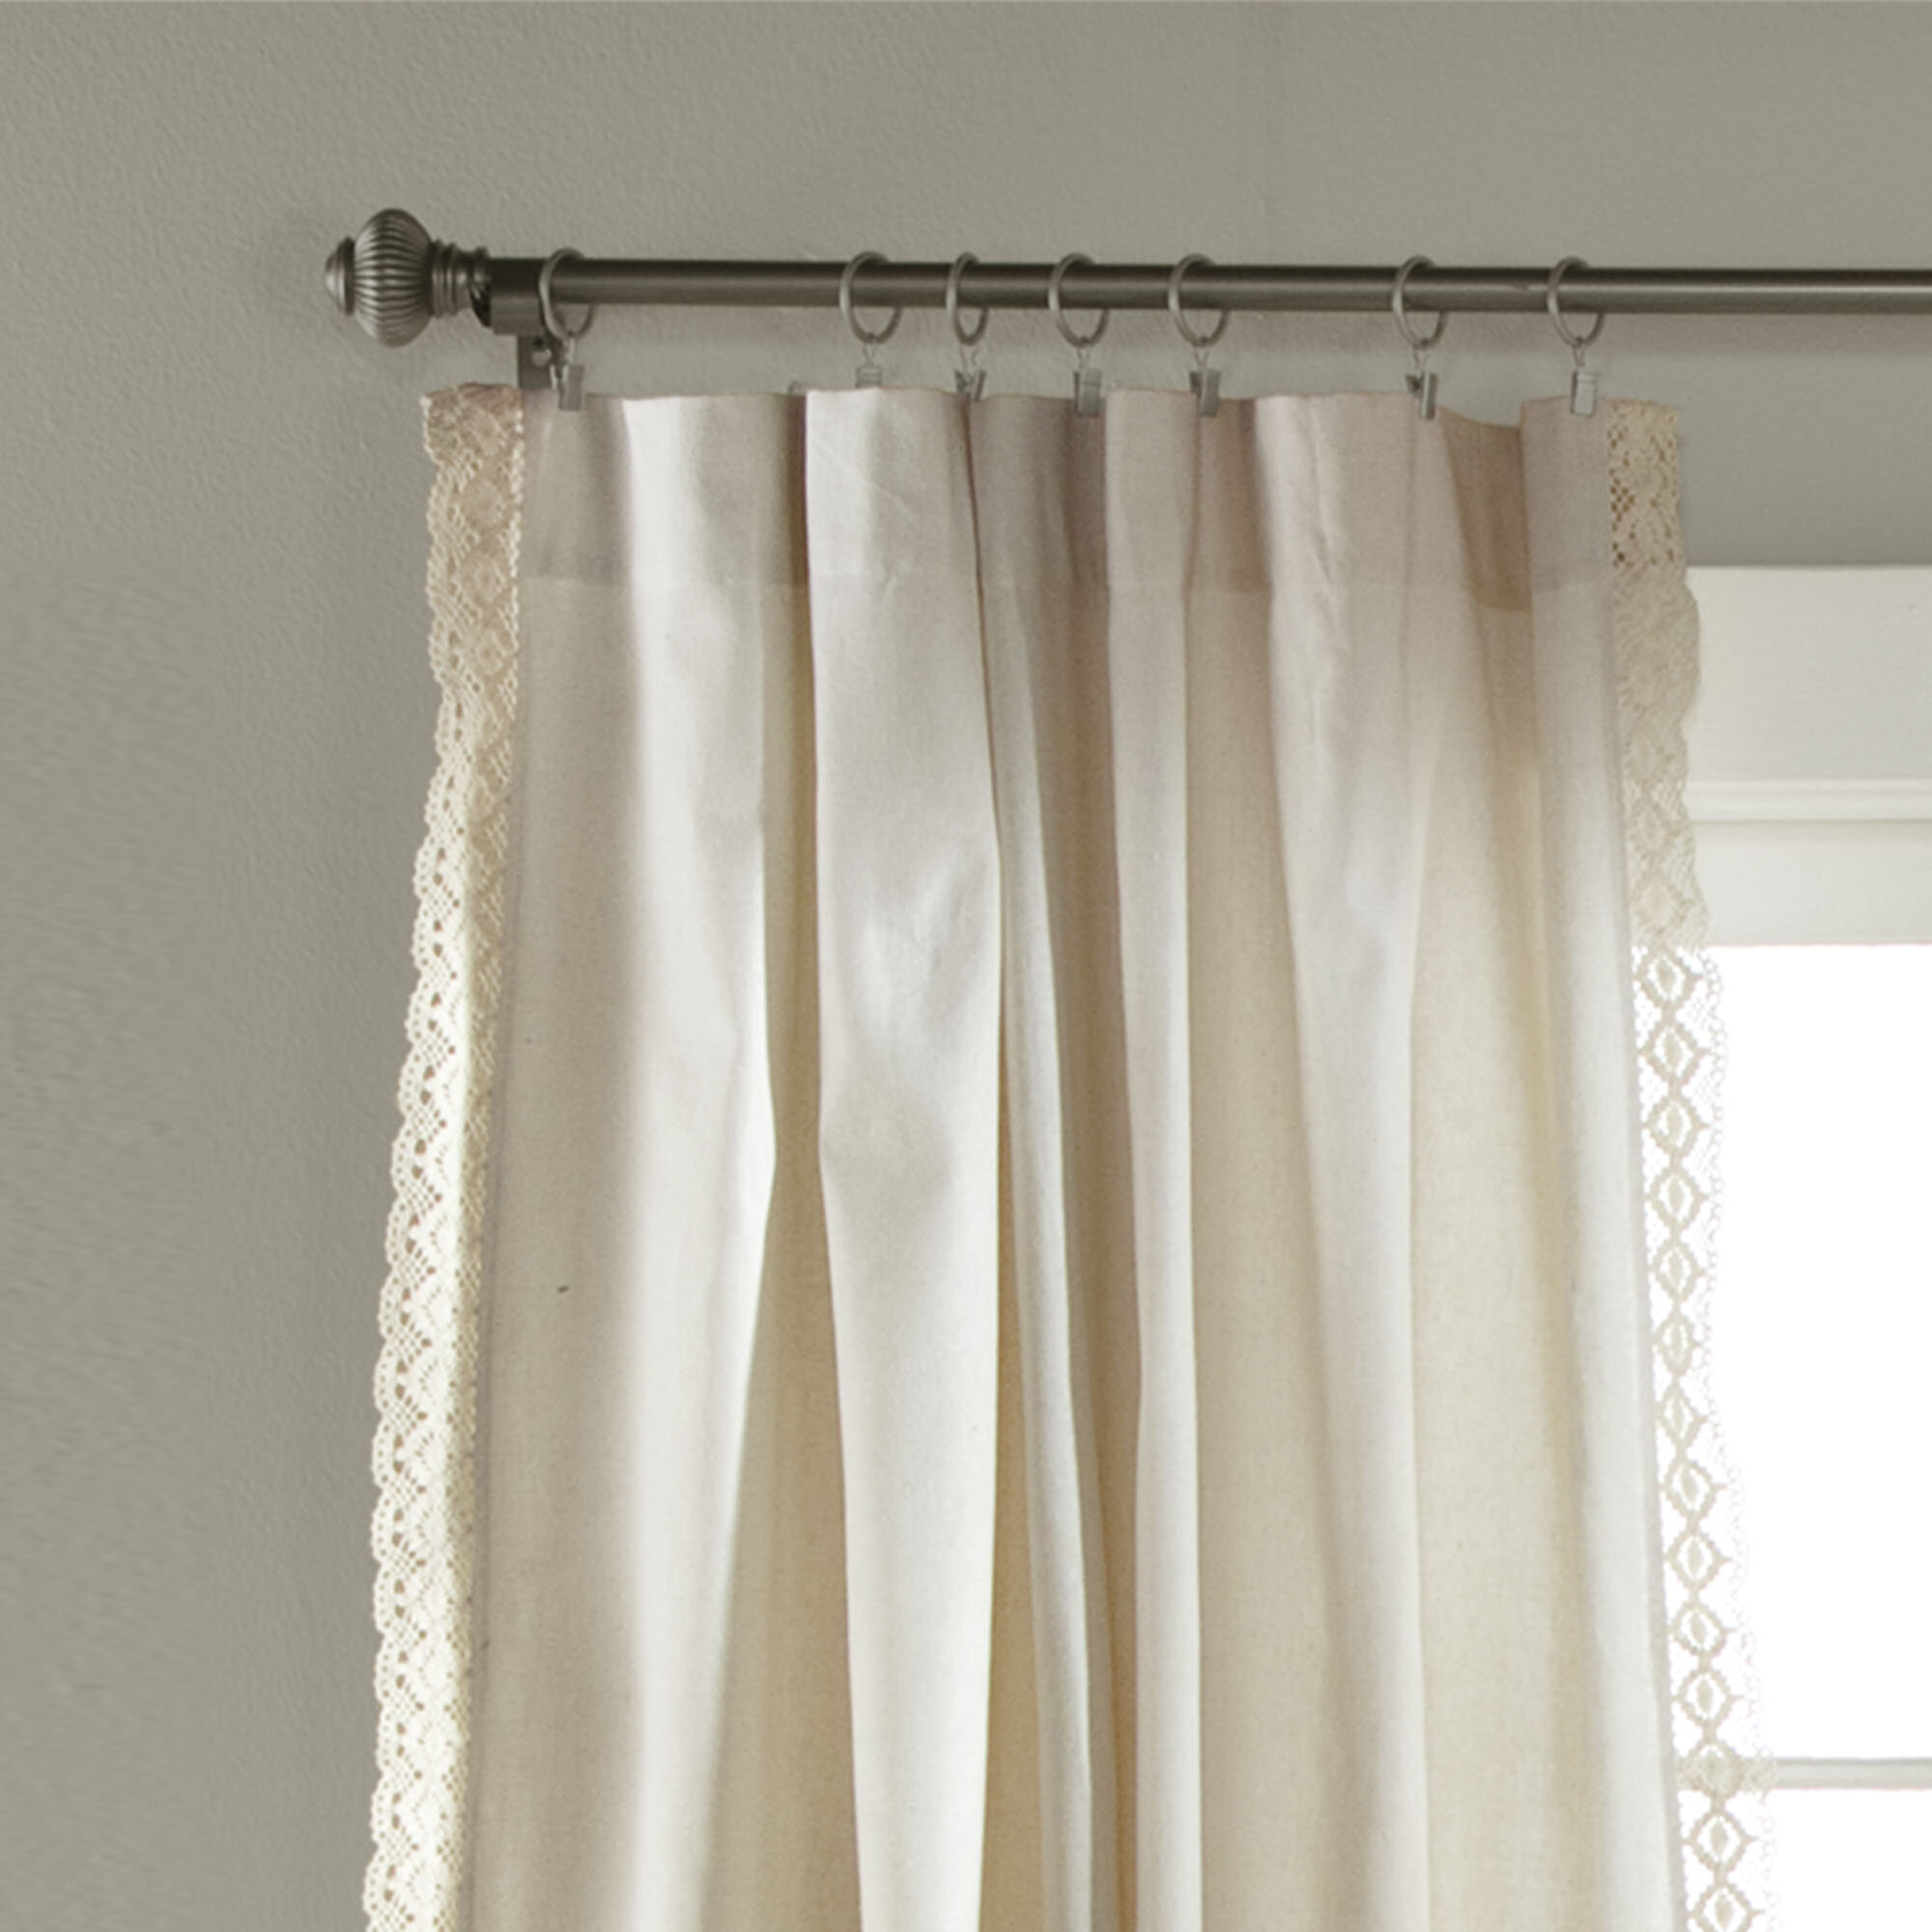 Panels Central Park Sheer Beige And White Stripe Farmhouse Curtains Boucle Linen Window Curtain Panel Pairs Yarn Dyed Woven 54 Inches Long For Living Room Bedroom 2 Pack Rod Pocket Rustic Living